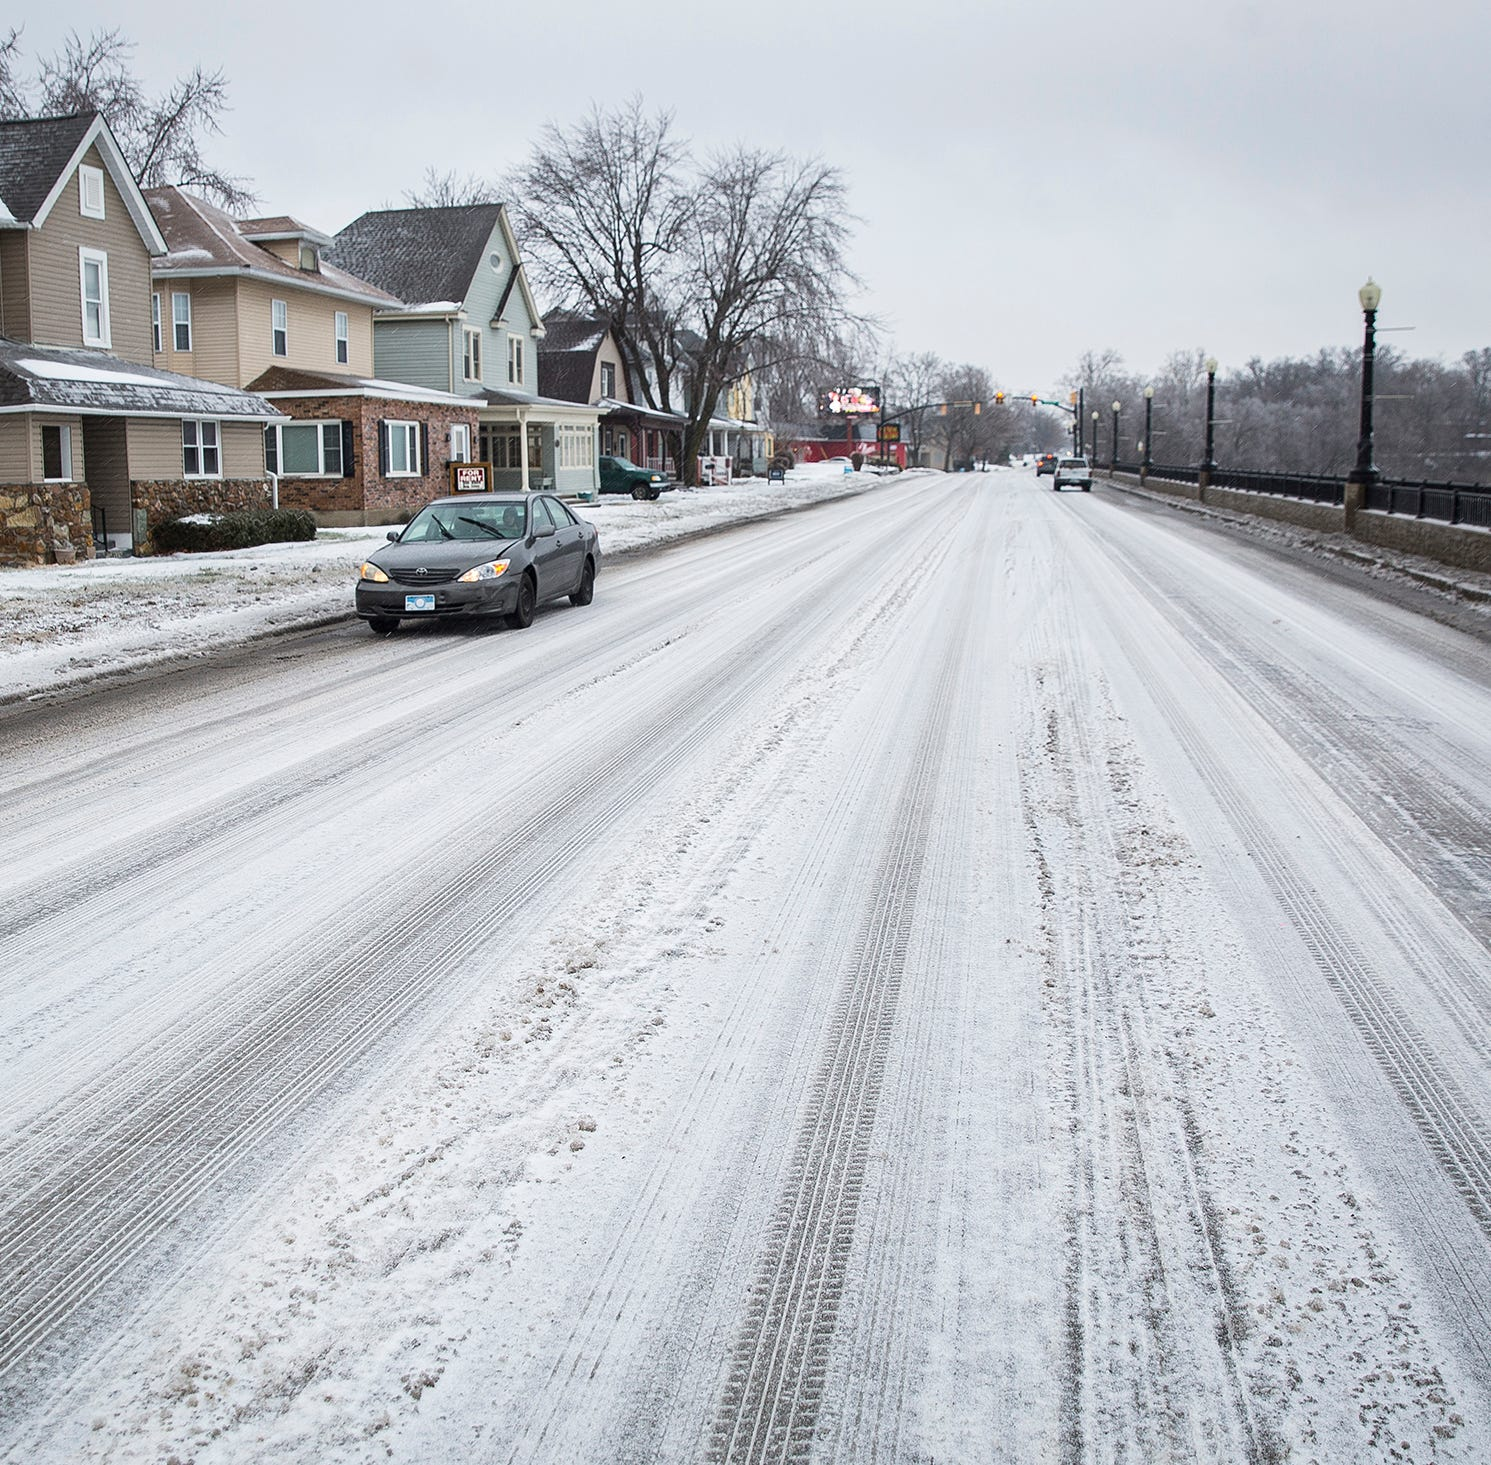 Winter storm: We prepped for snow, but got ice first